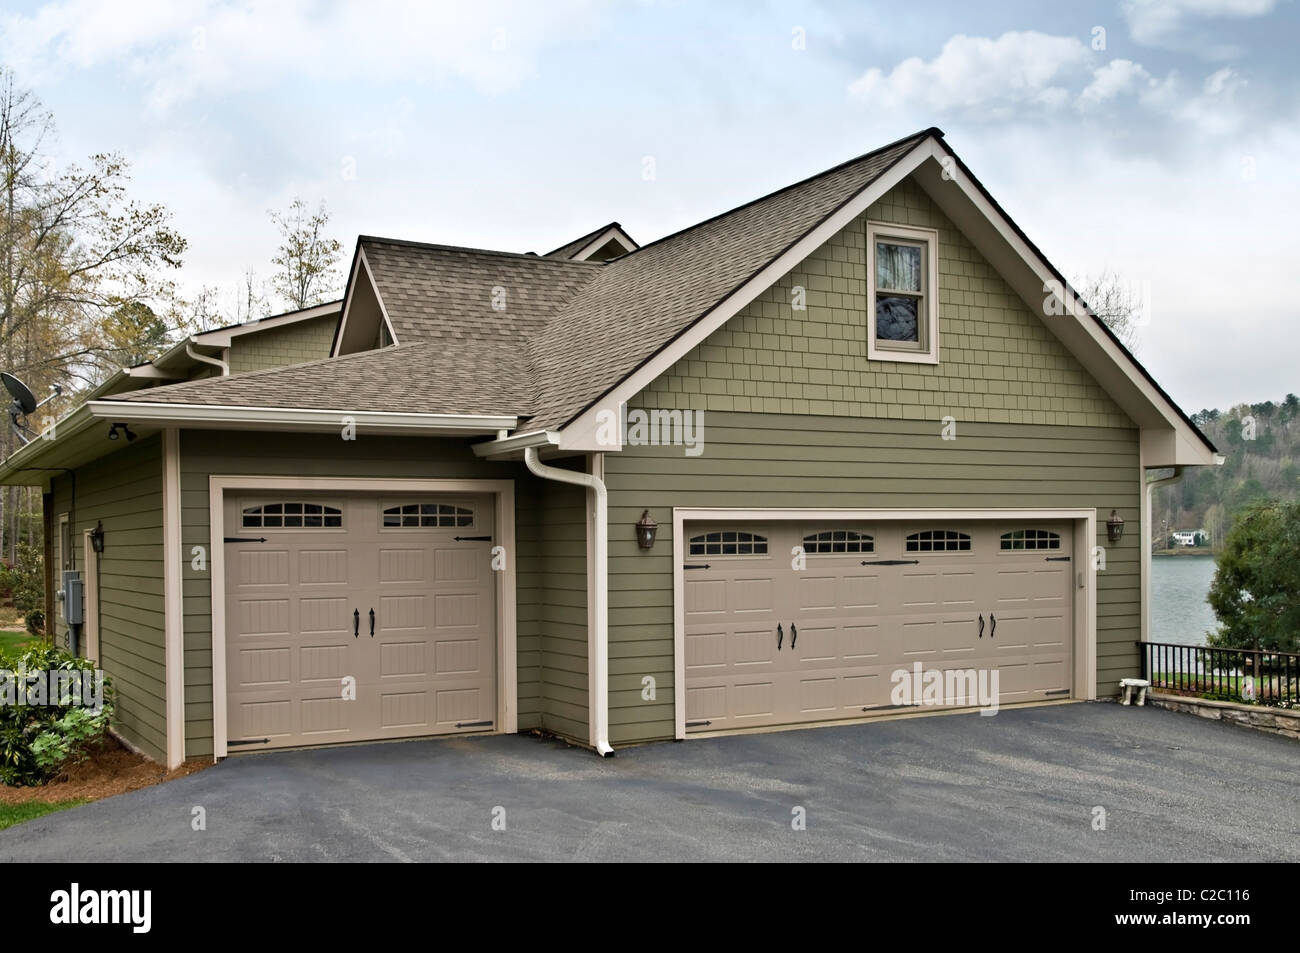 Side of a modern home showing the three garage doors. - Stock Image